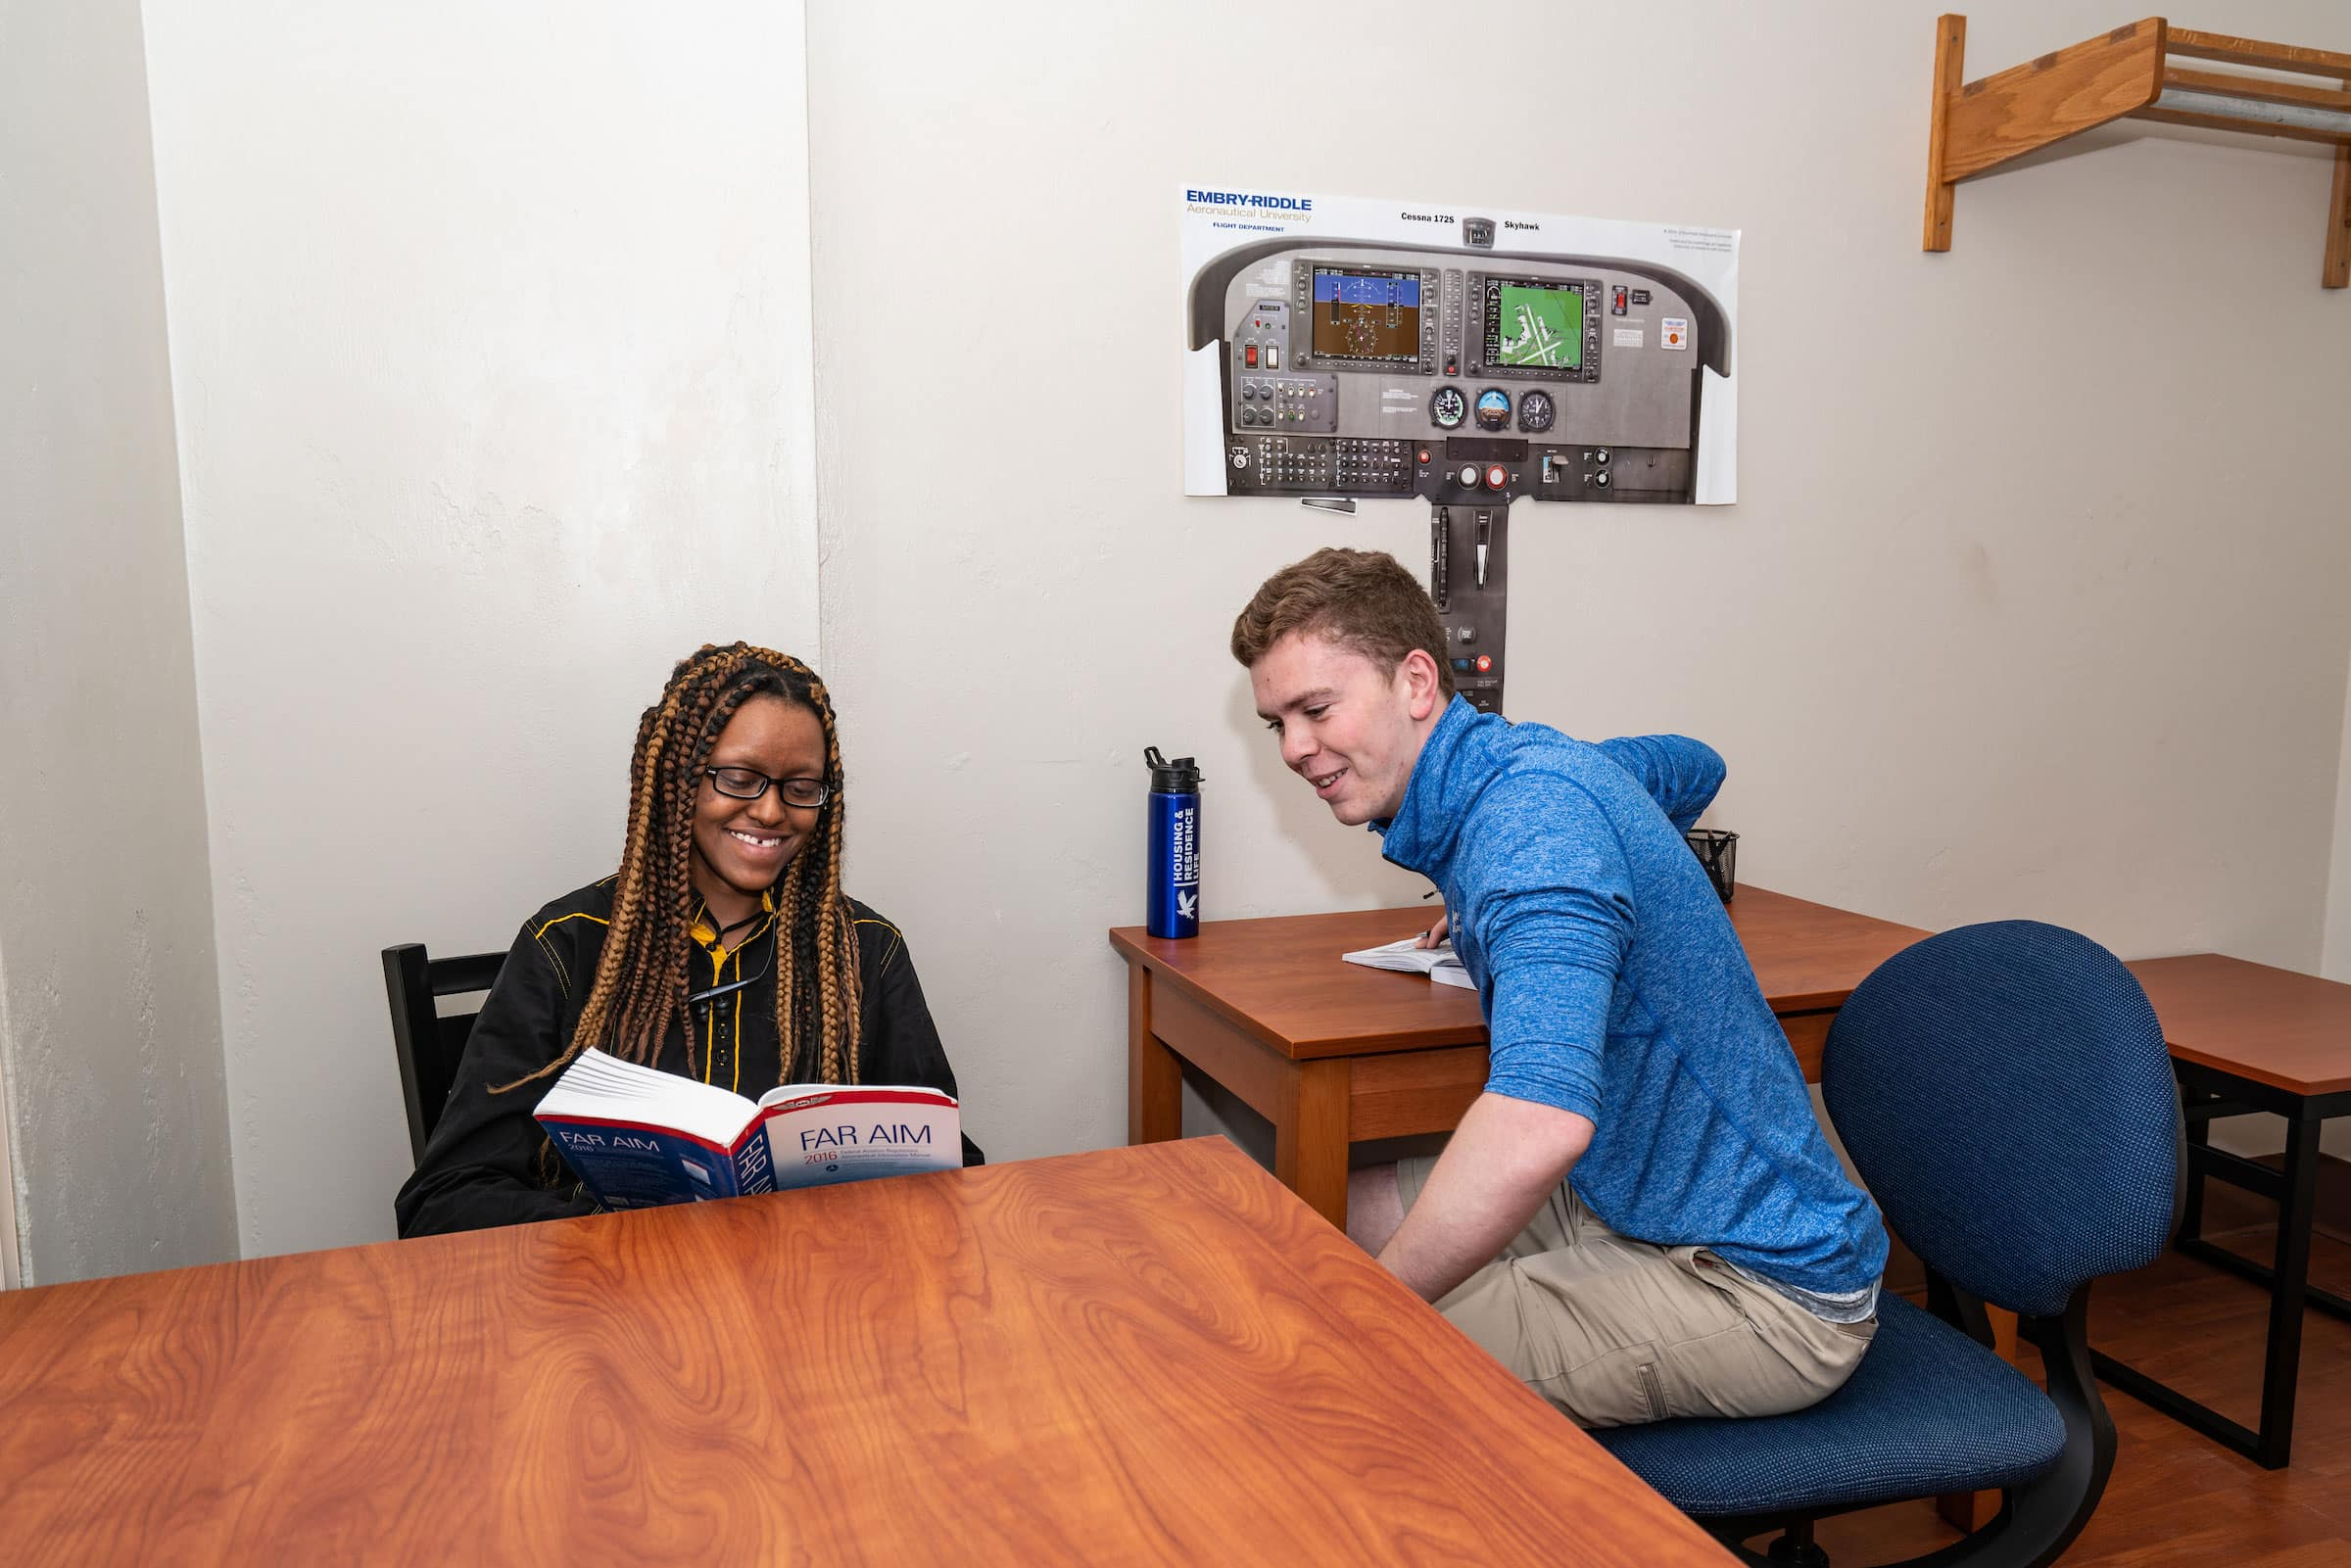 Students play a game at a community table in a Stimpson Hall room.